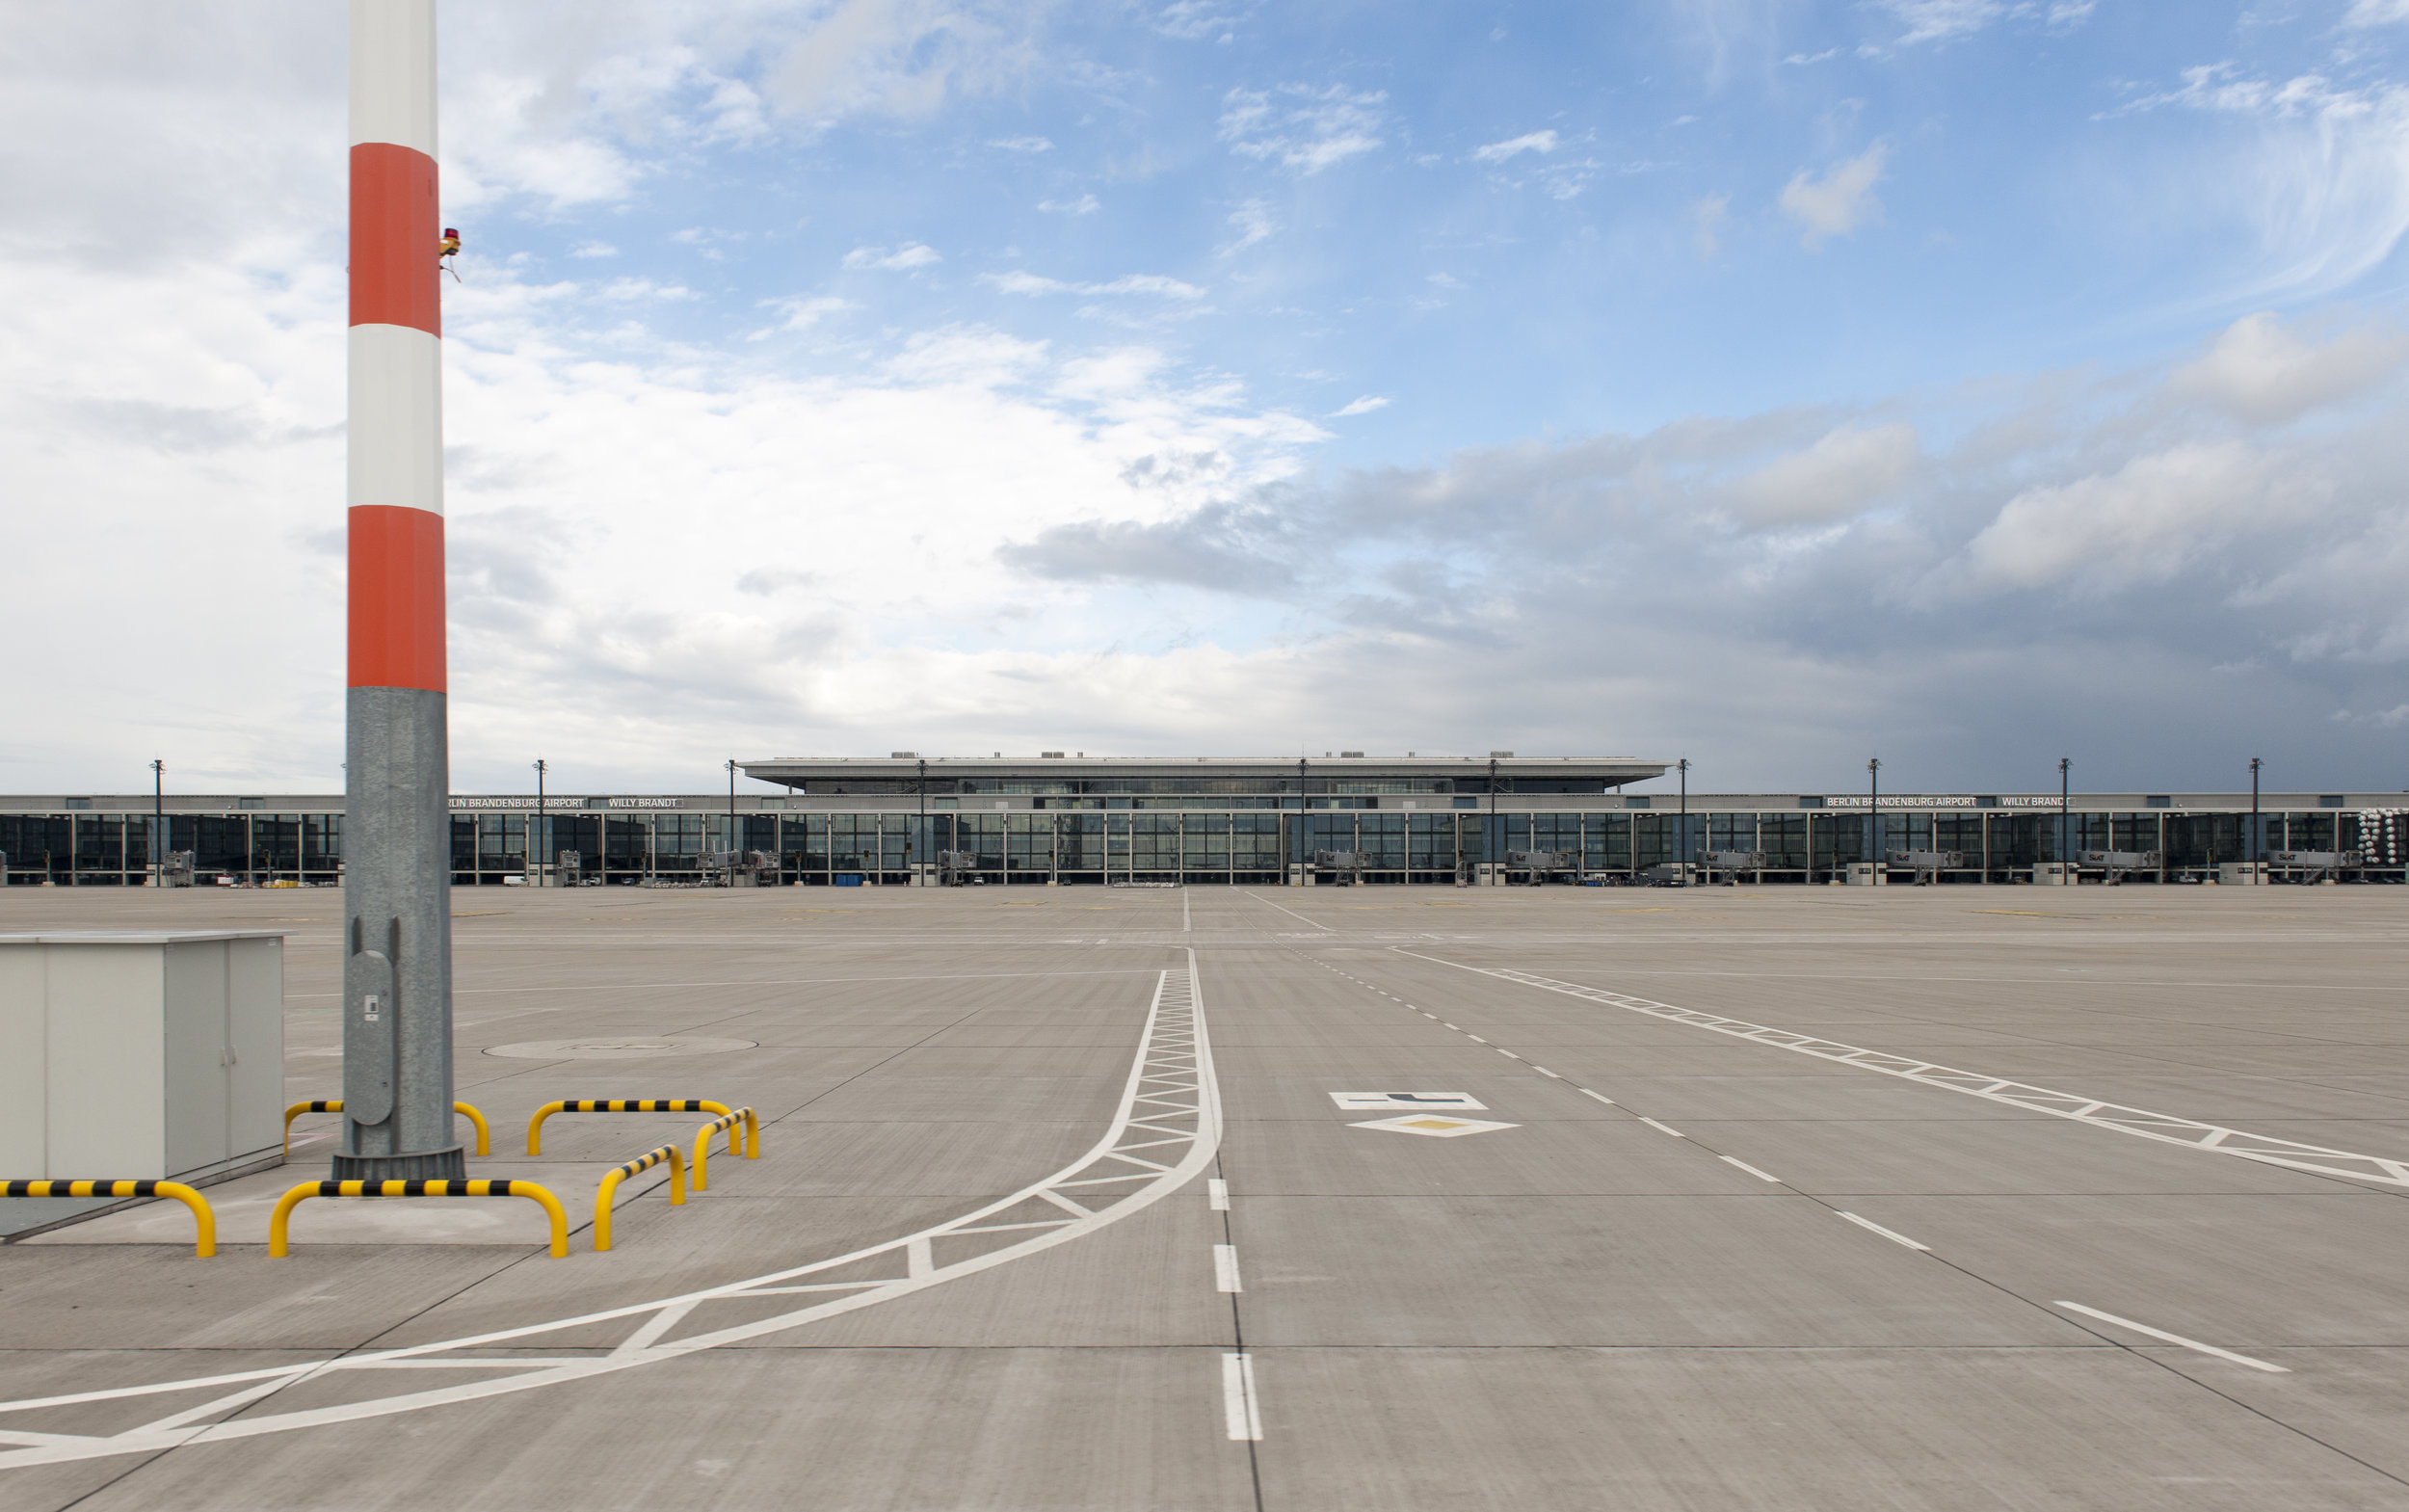 Airport The Laird Co BER Airport Ramp Elevation Architecture Exterior photography.jpg